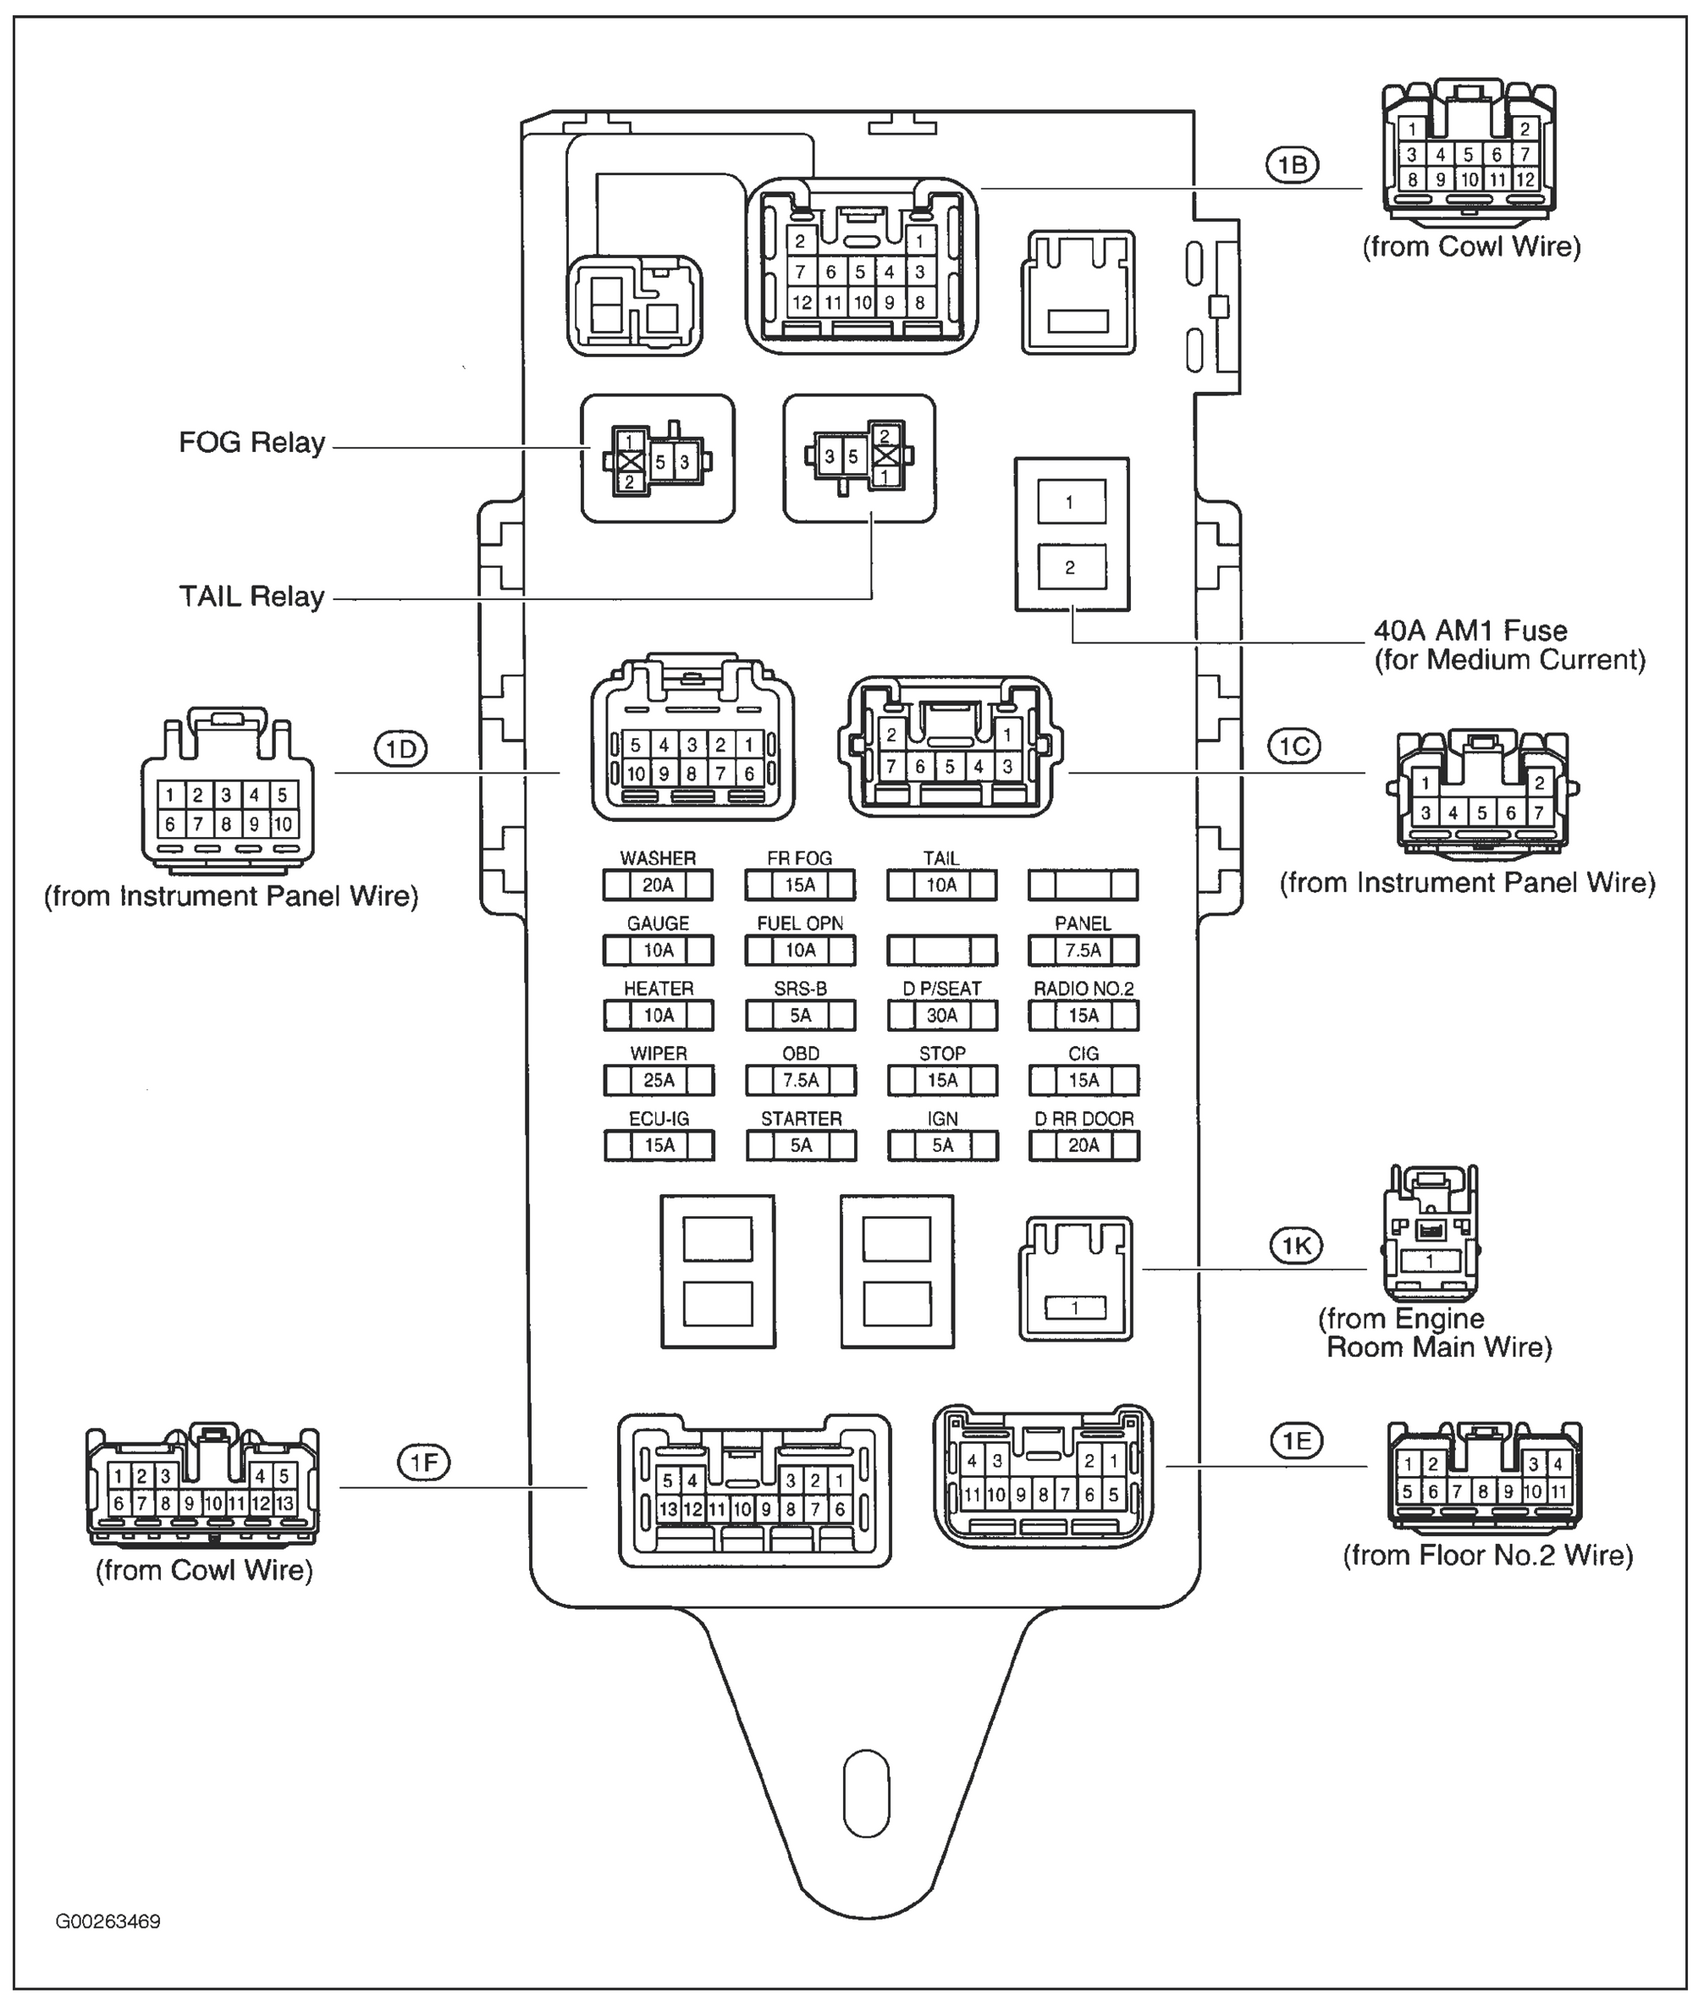 2006 lexus gs300 wiring diagram another wiring diagrams u2022 rh  benpaterson co uk 1998 lexus gs300 wiring diagram 1999 lexus gs300 wiring  diagram